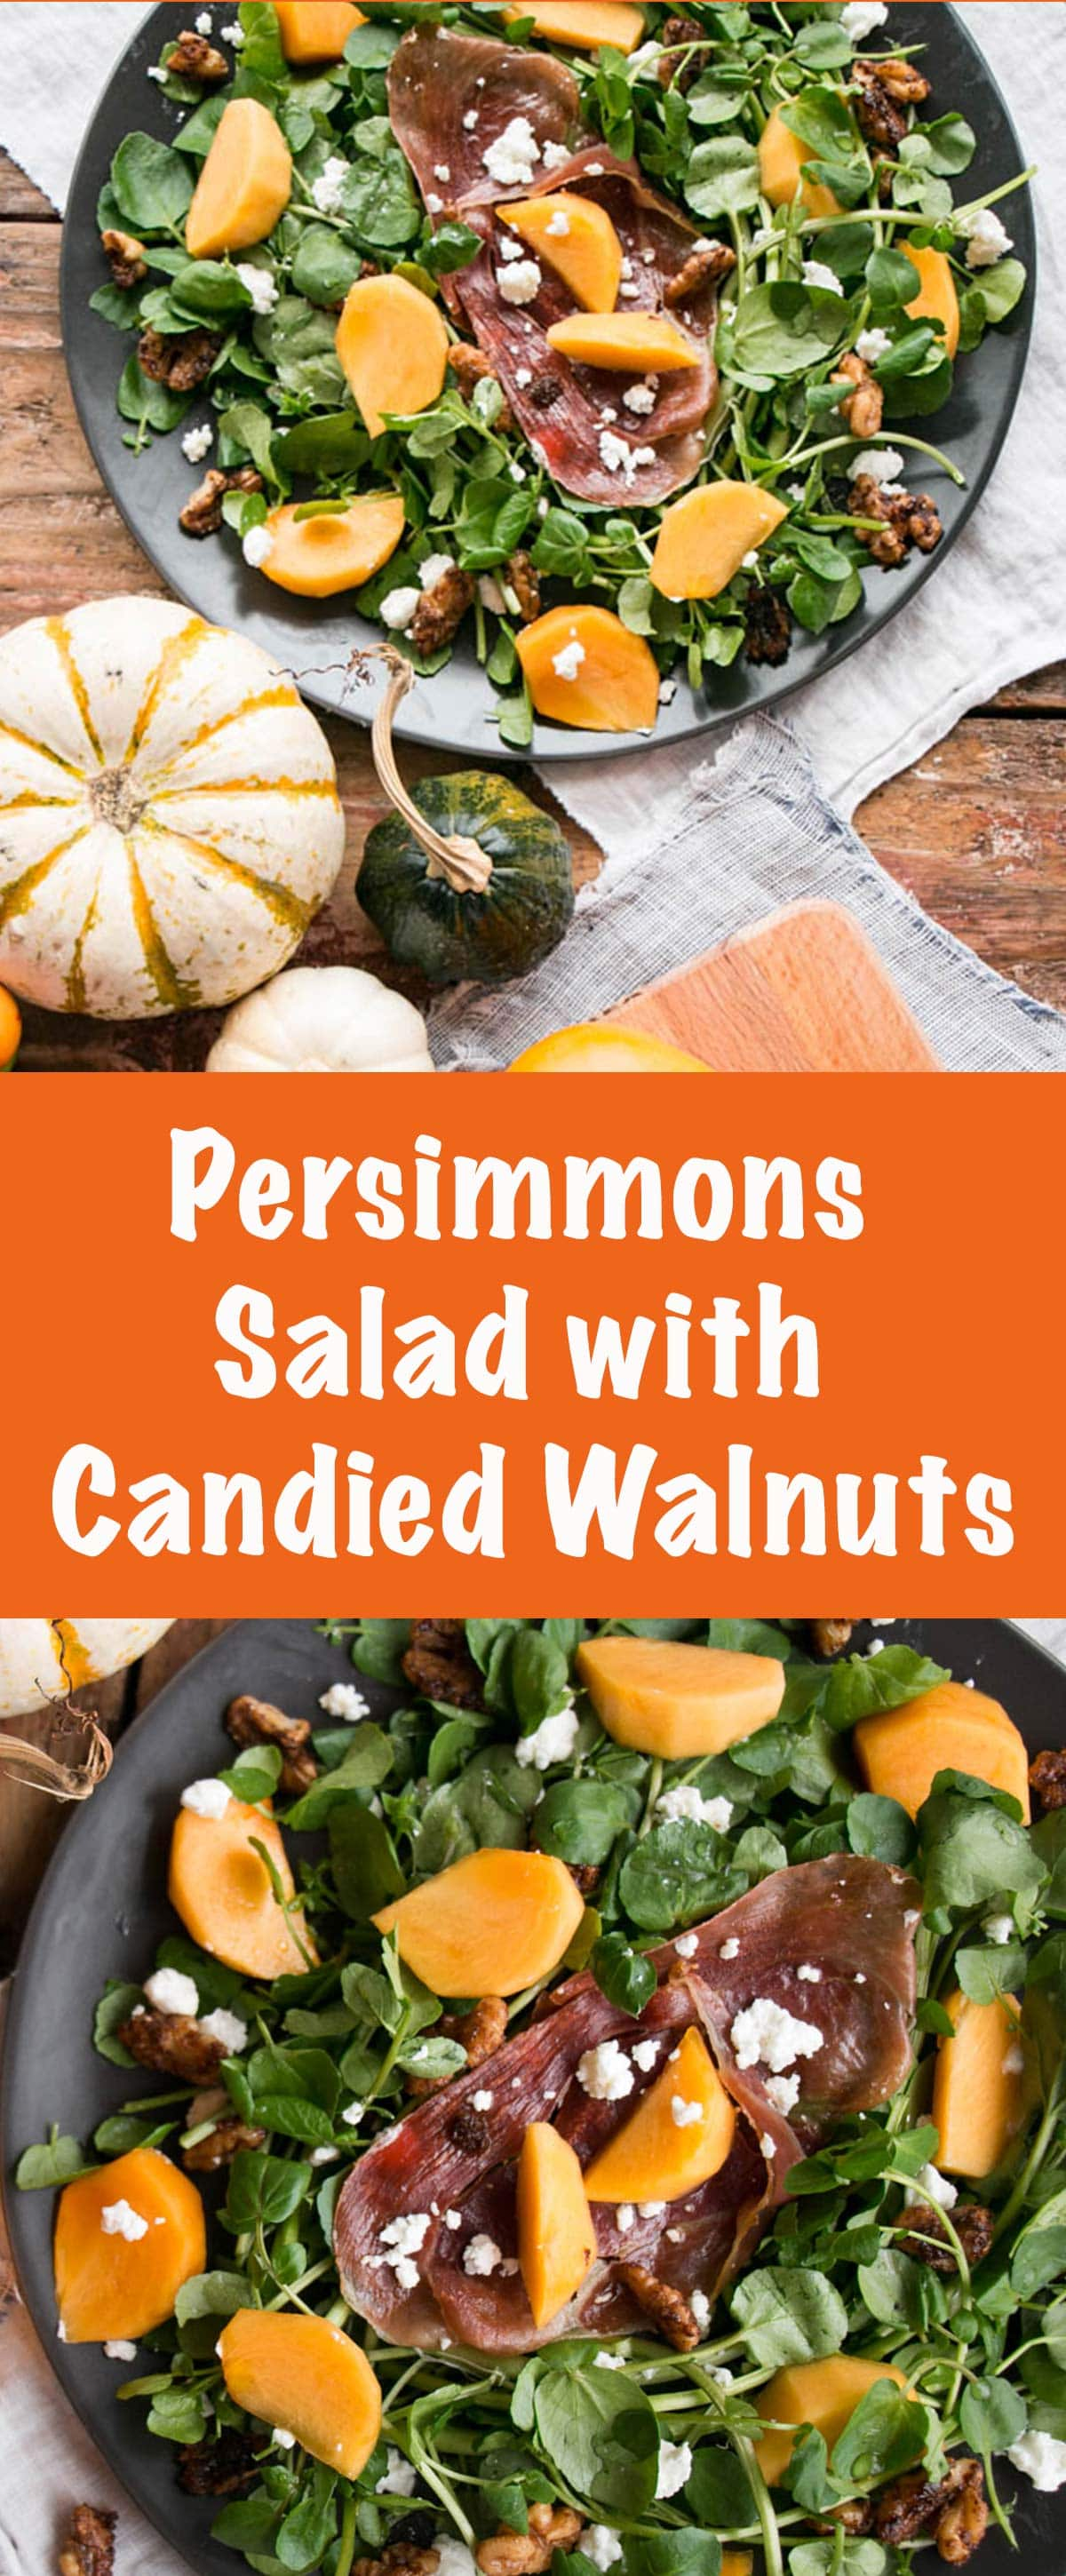 Persimmons and Watercress Salad with Candied Walnuts and Goat's Cheese | My Kitchen Love